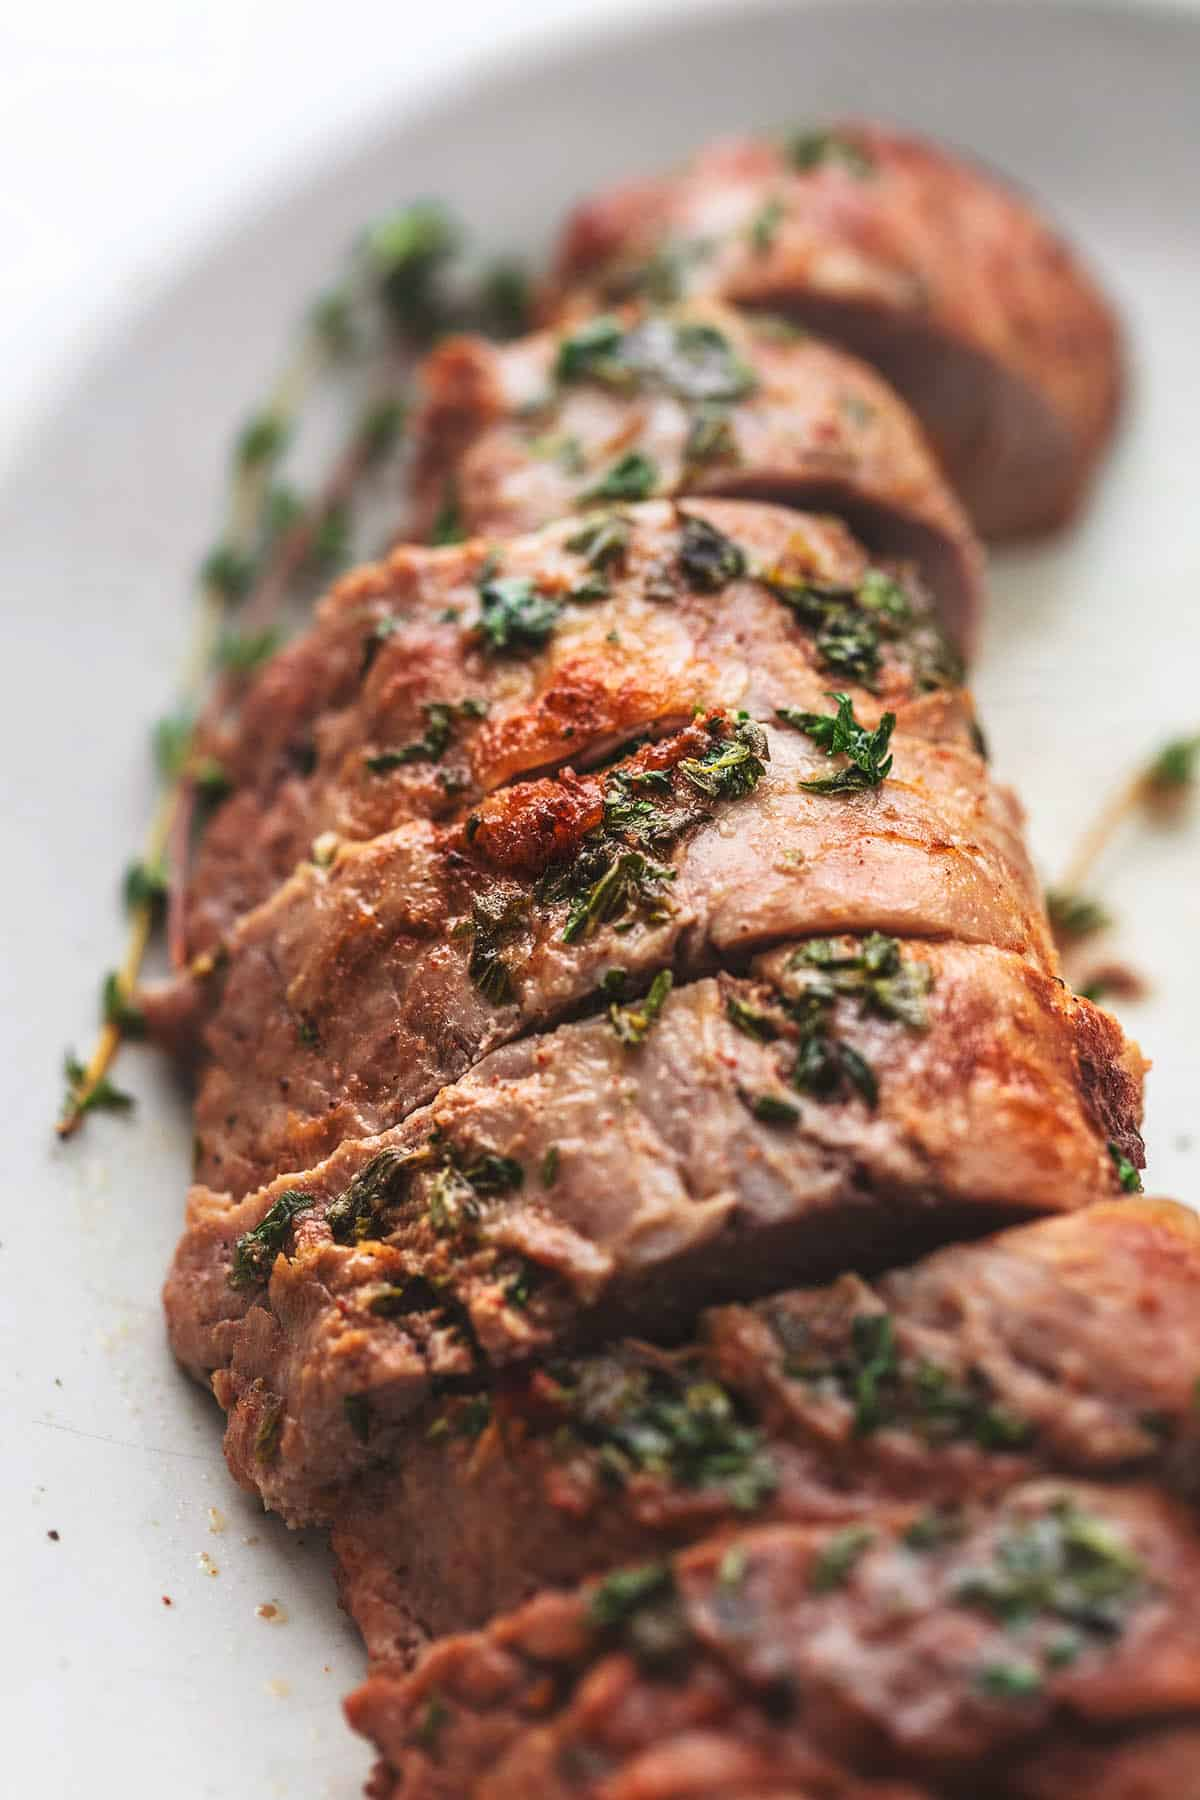 close up view of roasted sliced pork tenderloin with herbs on top